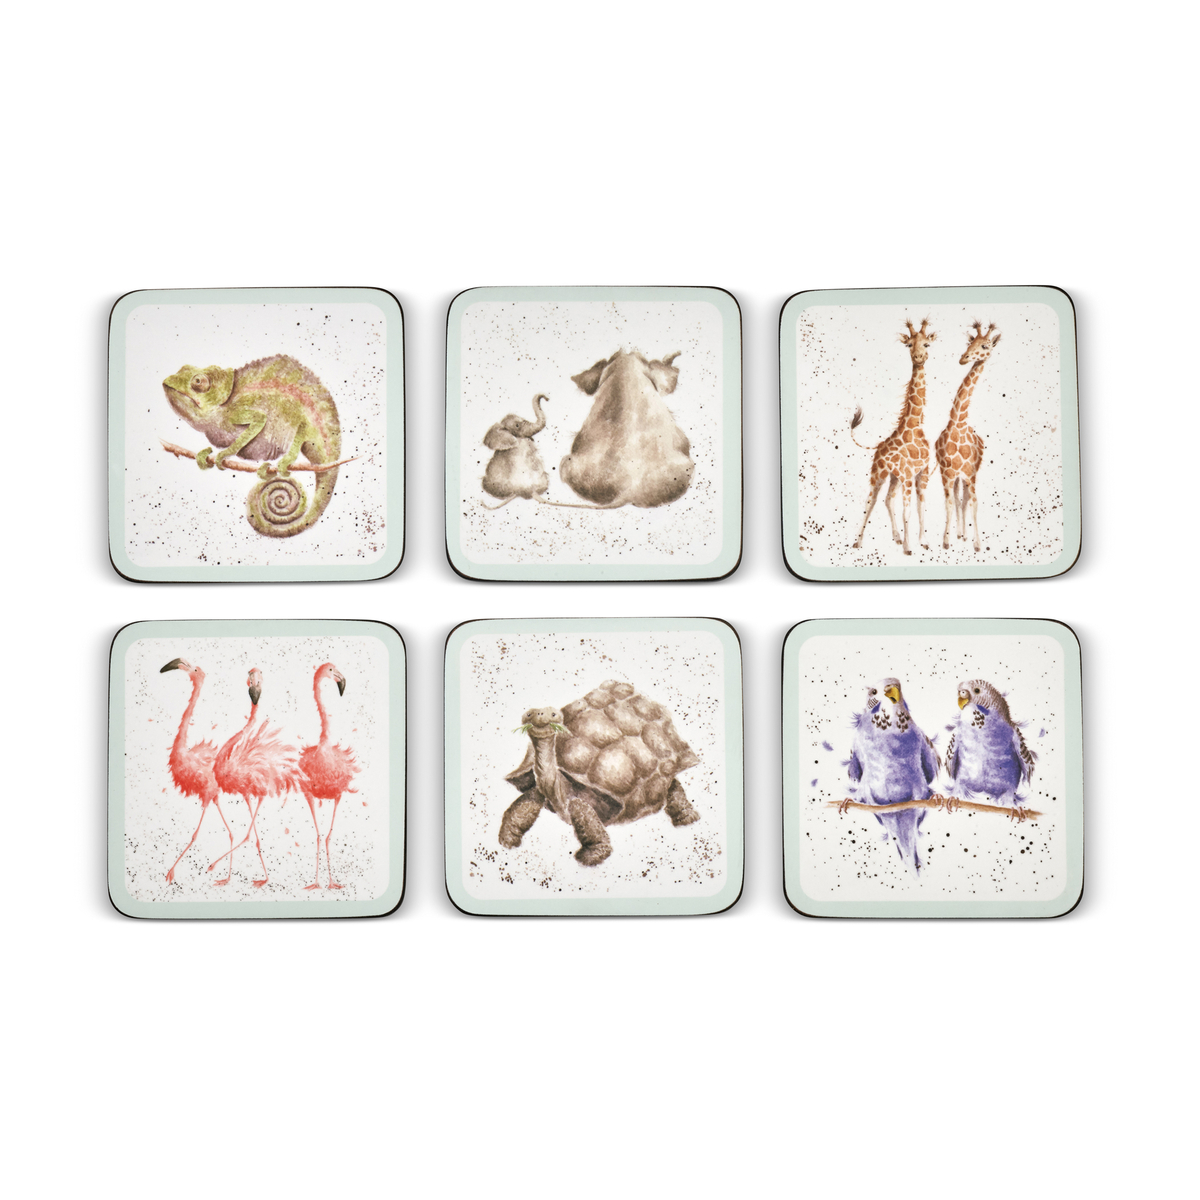 Pimpernel Wrendale Designs Coasters Set of 6 image number 2